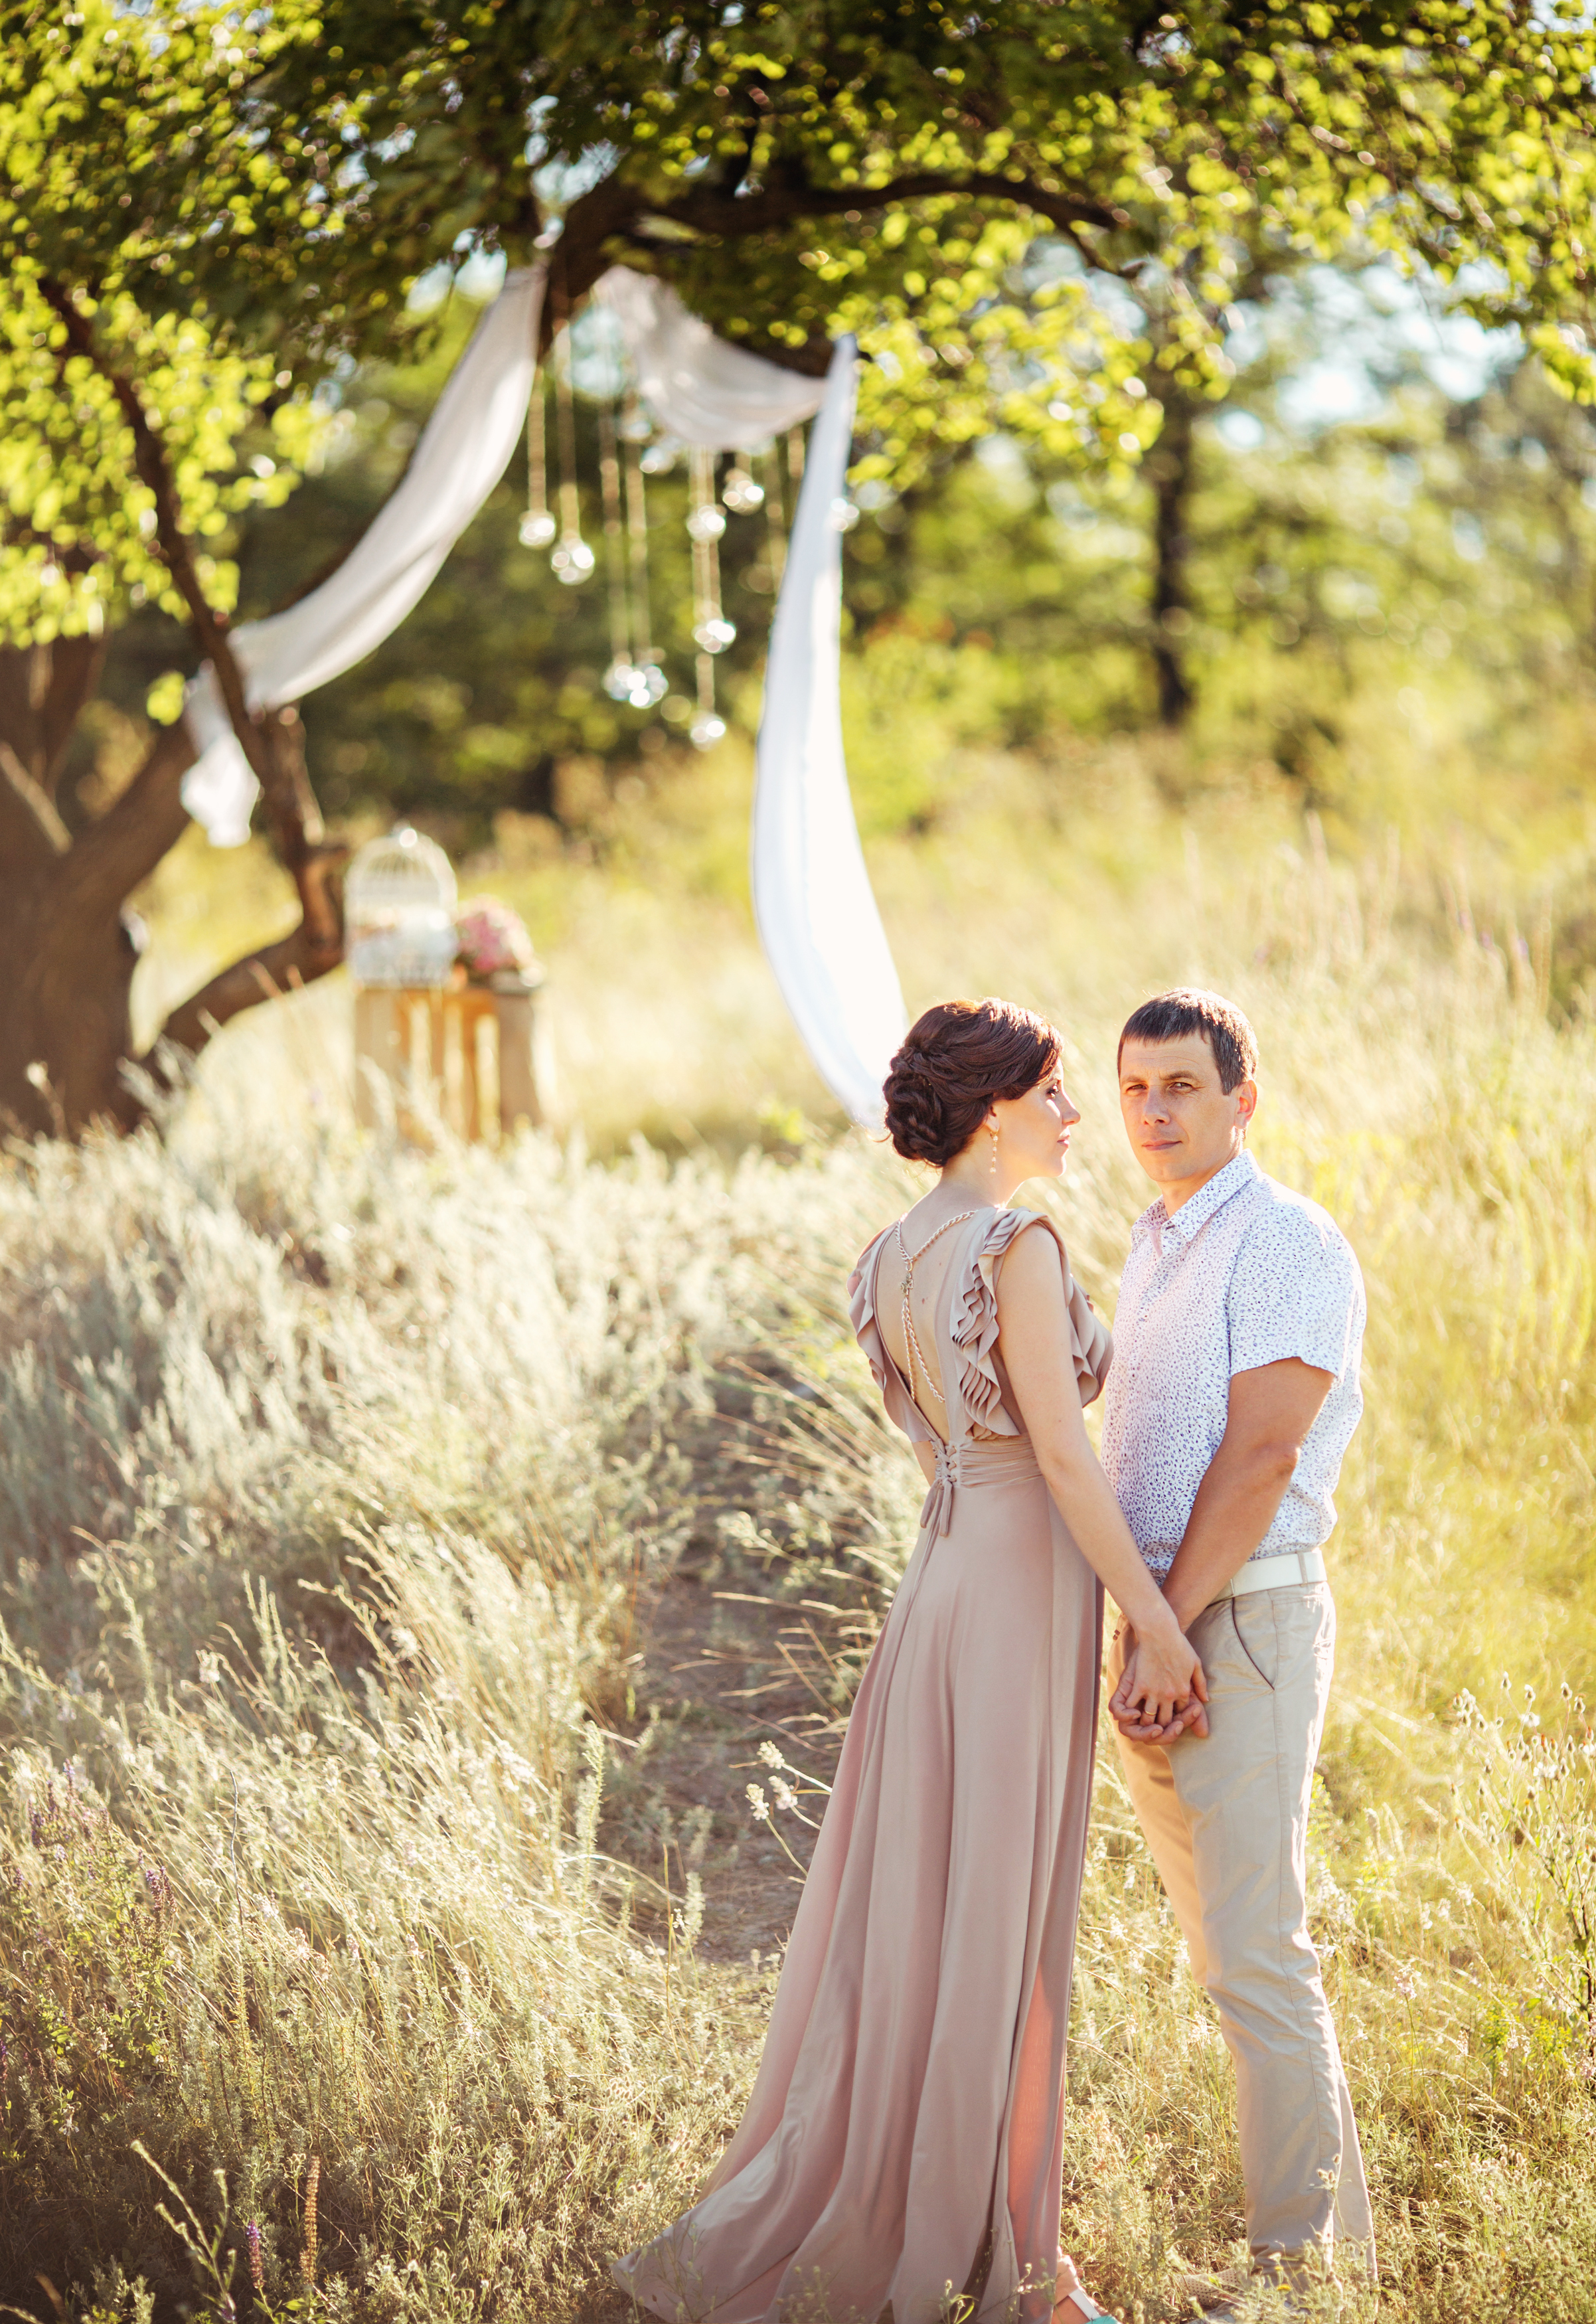 Check Out Our Elopement Packages HERE